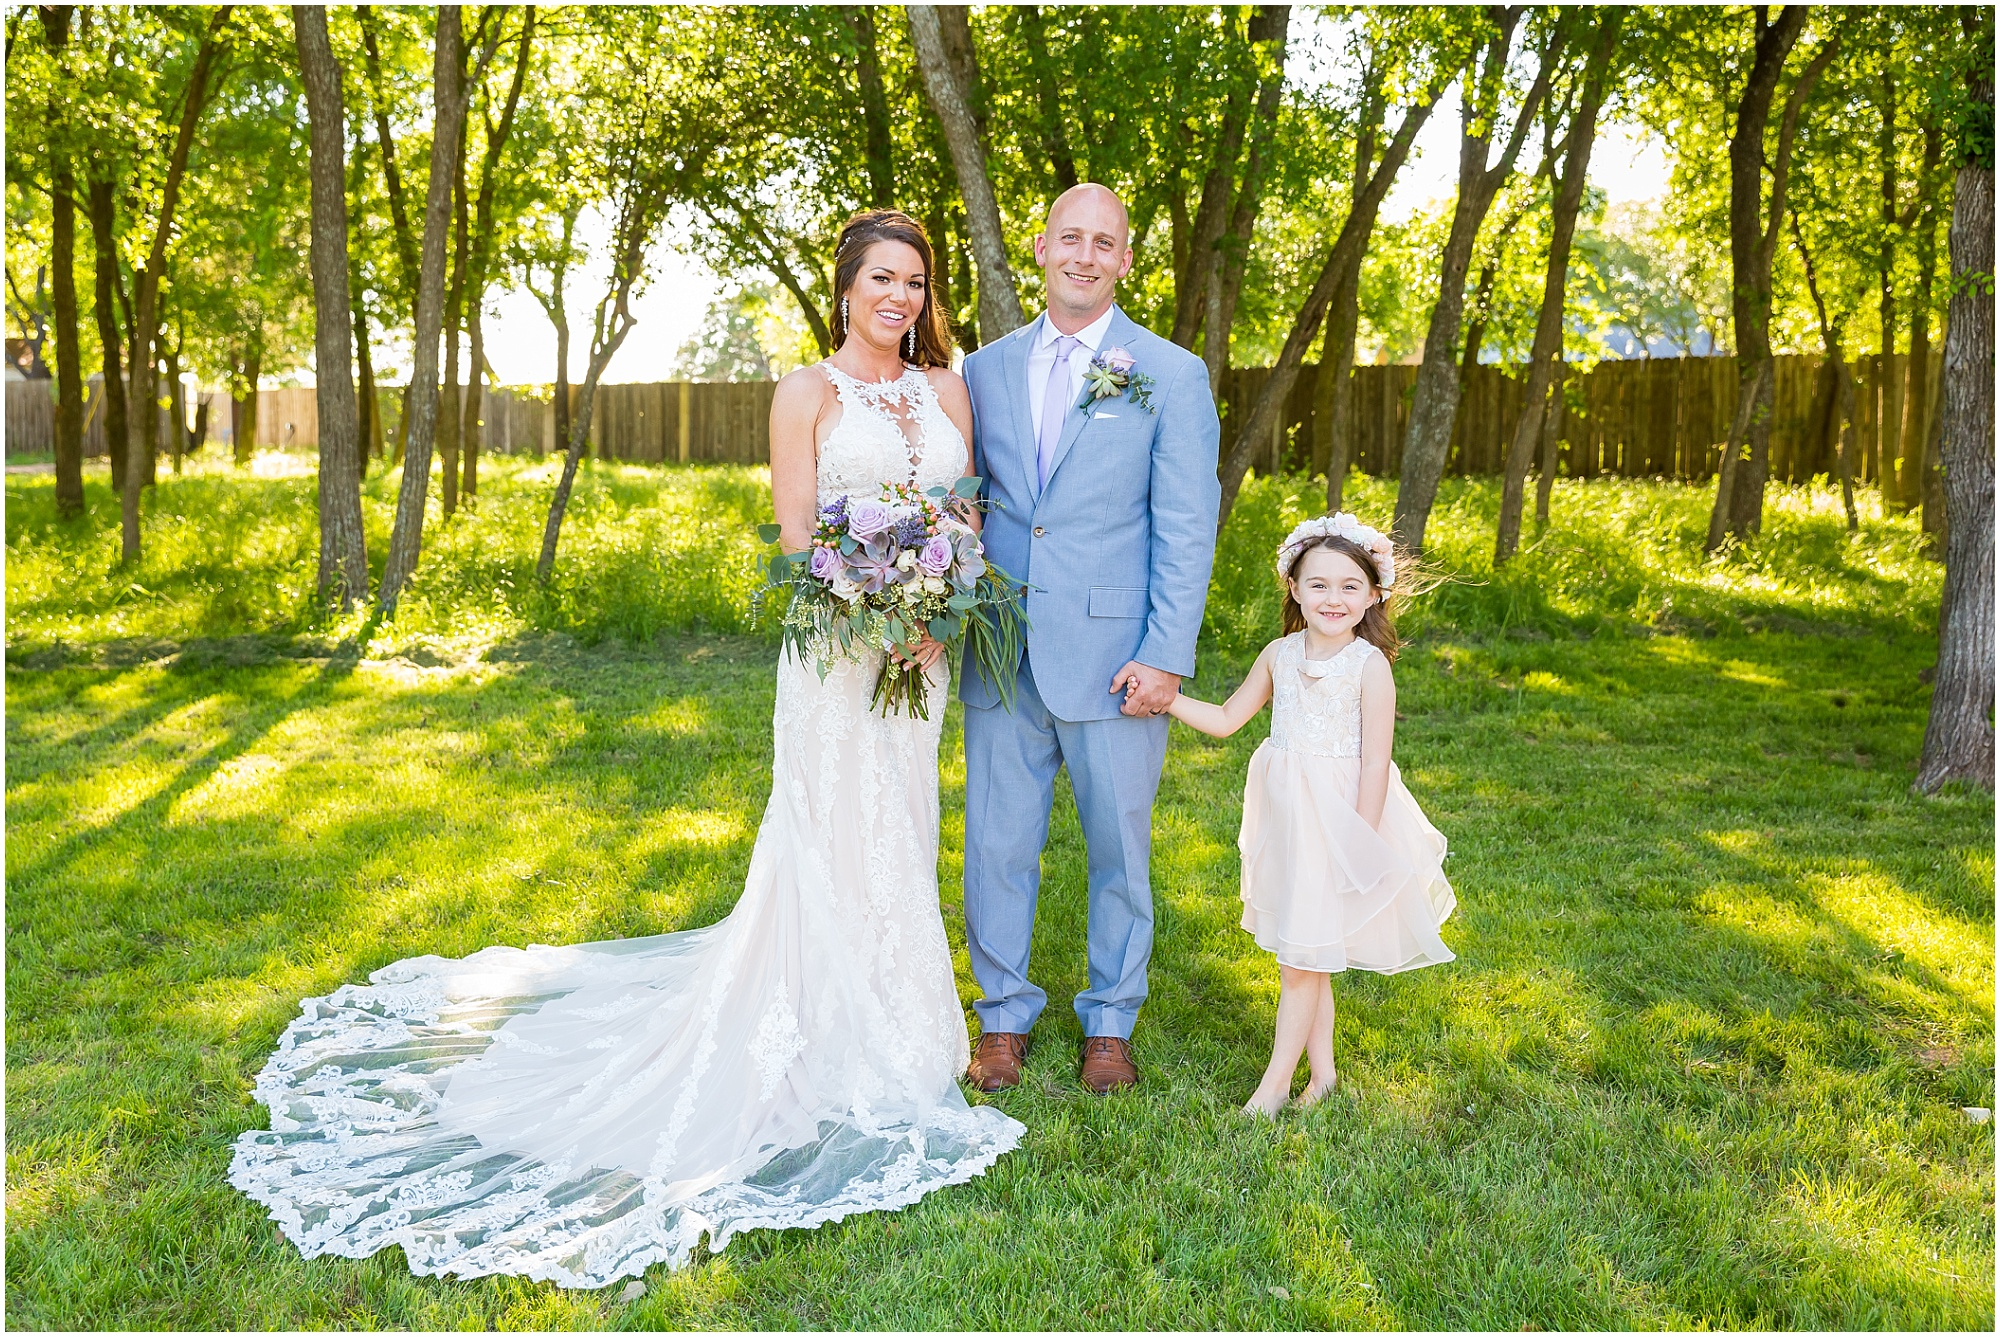 A bride and groom have their daughter be their flower girl for their wedding day | Jason & Melaina Photography | www.jasonandmelaina.com